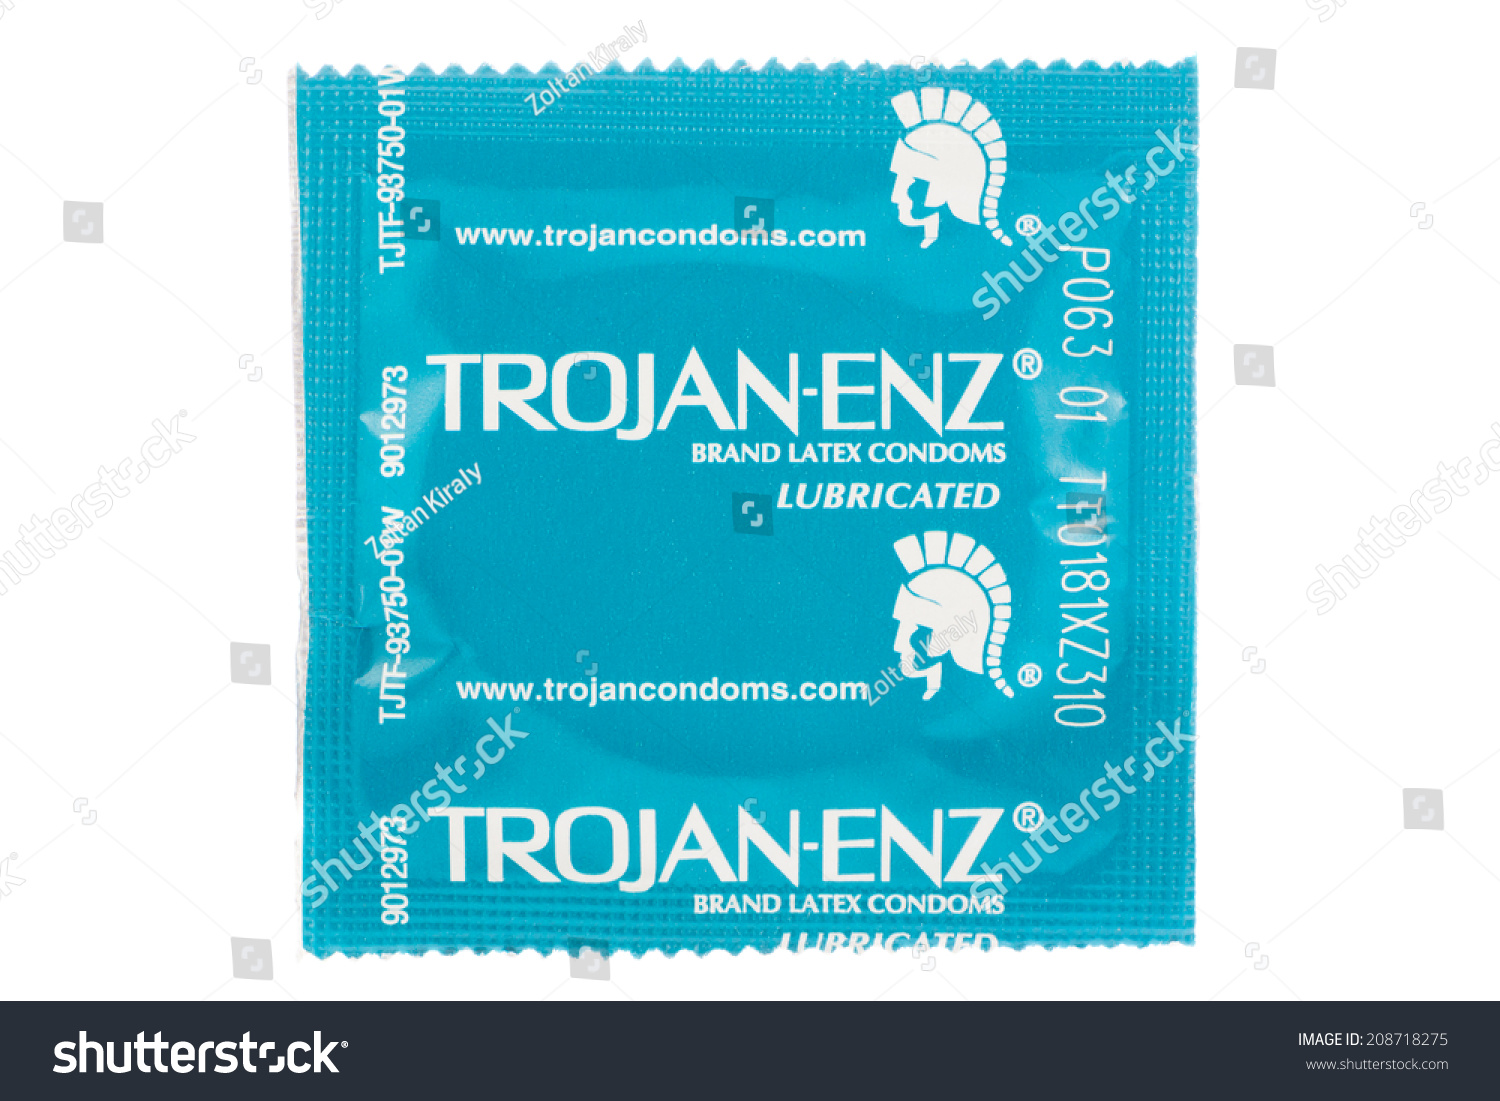 Trojan condom wrappers